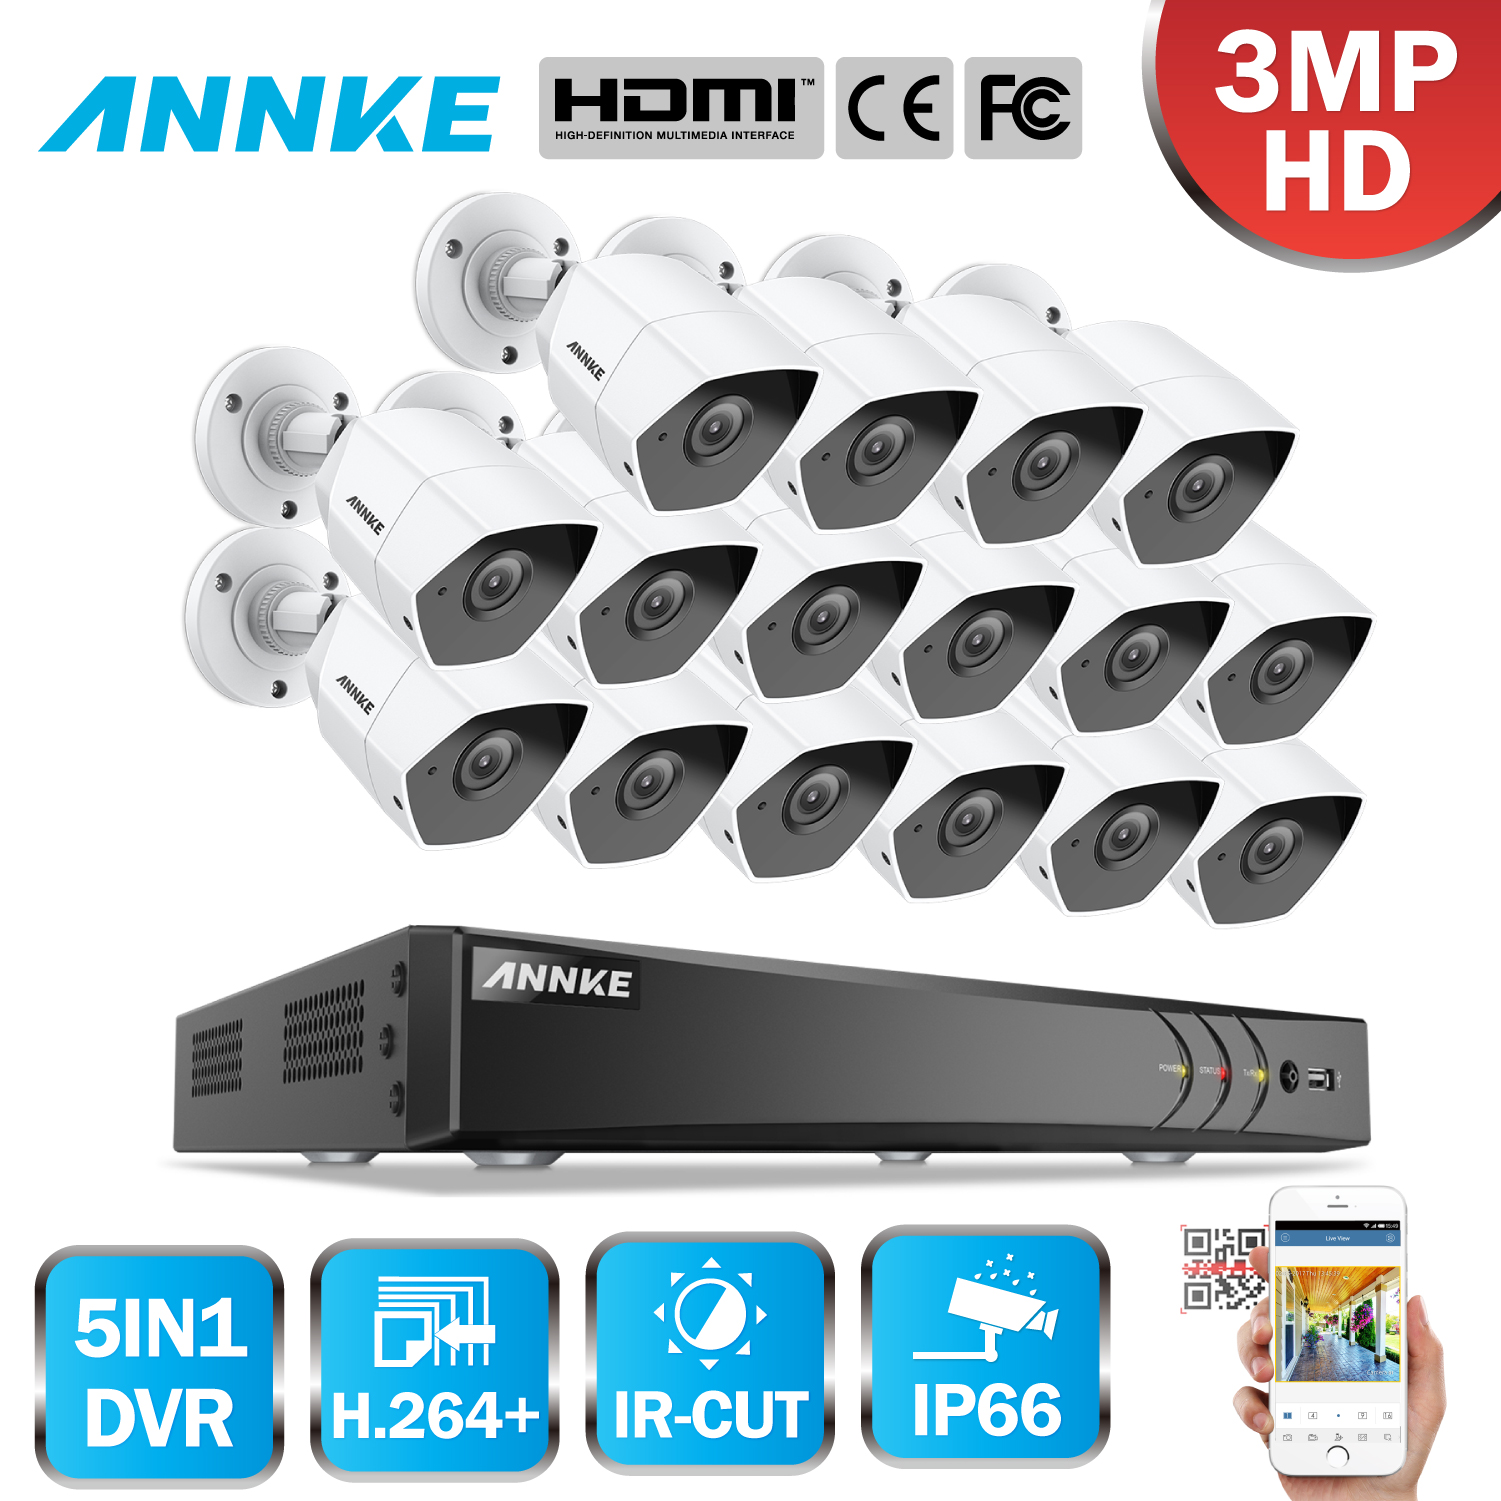 ANNKE Full HD 16CH 5in1 3MP CCTV Sistema di 16 pcs 3MP di Sicurezza Della Pallottola Macchina Fotografica Impermeabile di Smart IR Outdoor 3MP Video kit di sorveglianza